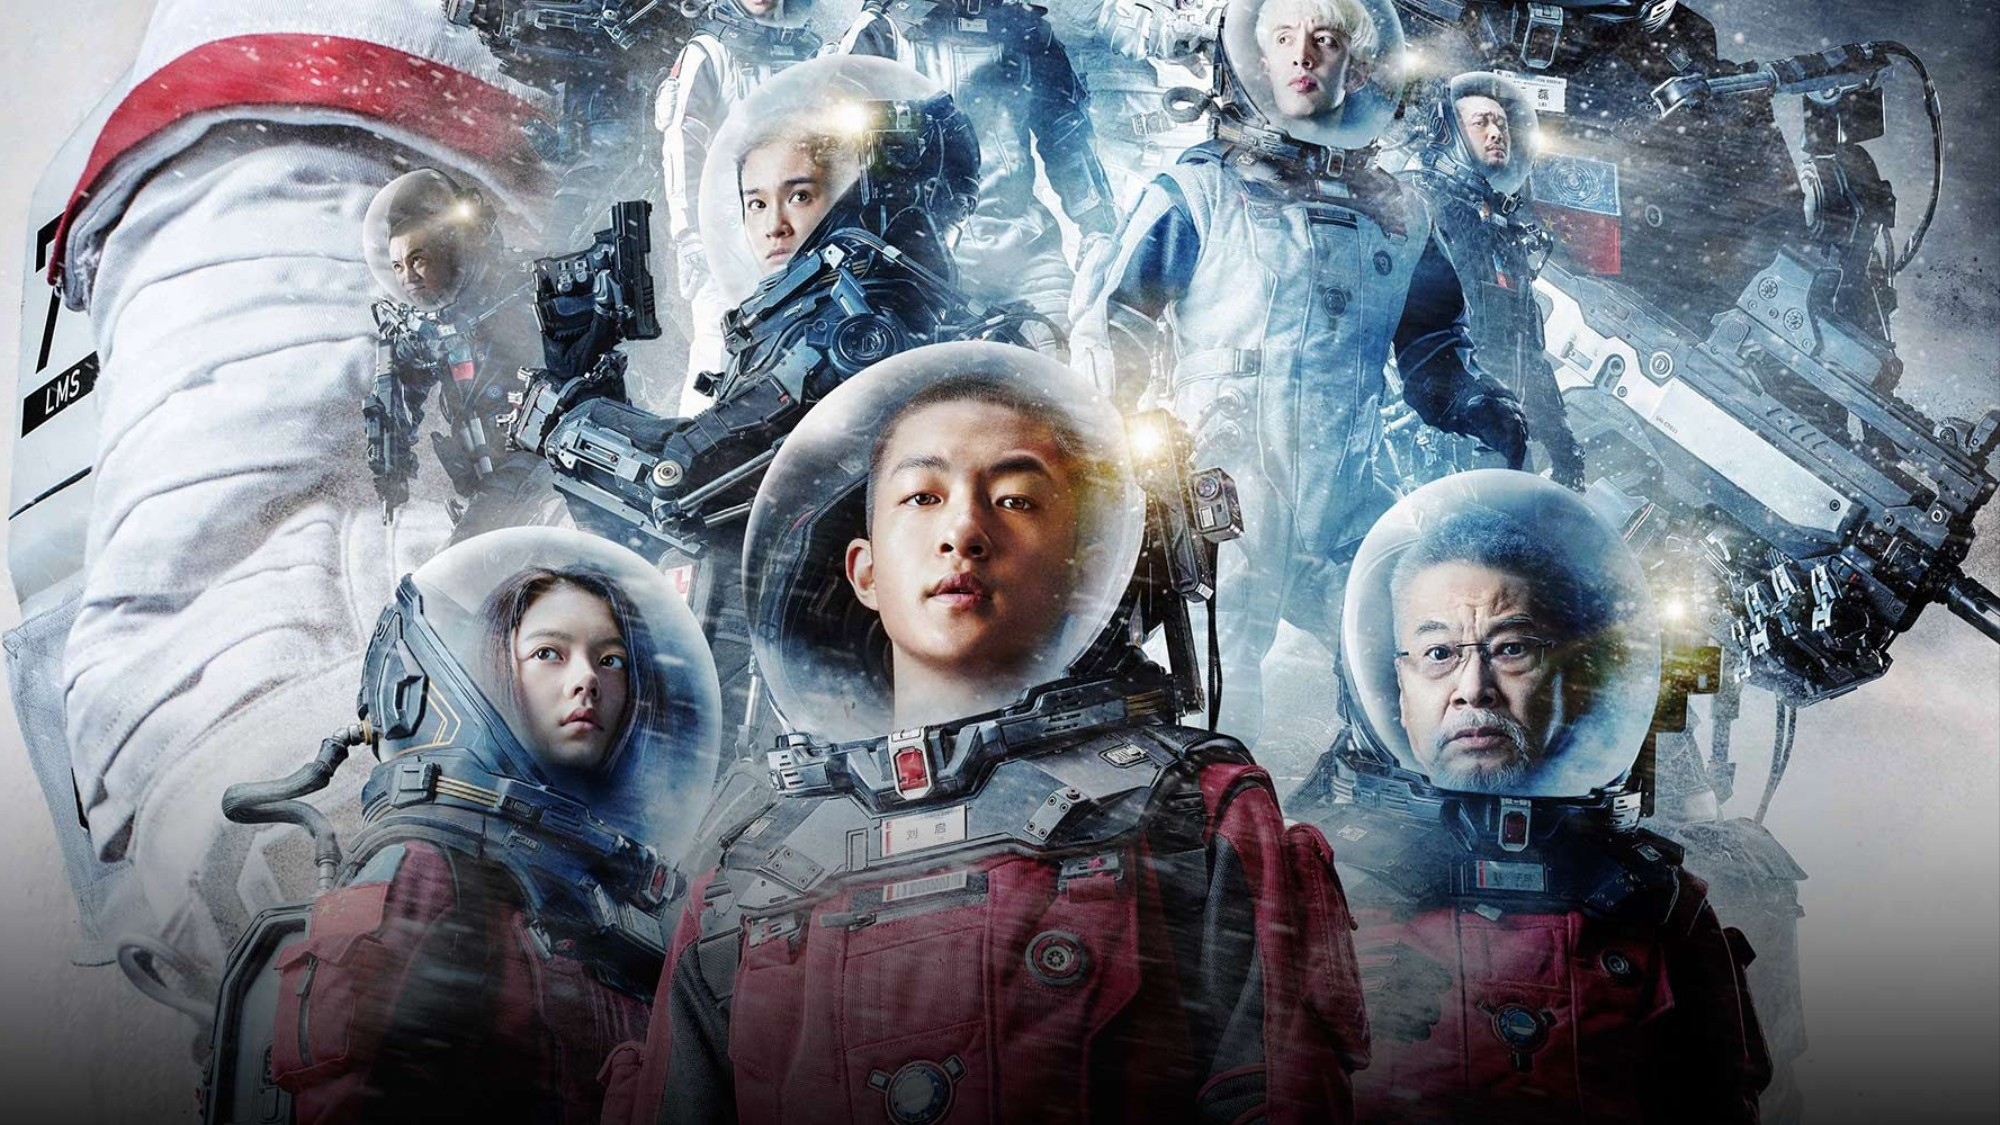 The Wandering Earth': What Western Media Got Wrong - VICE